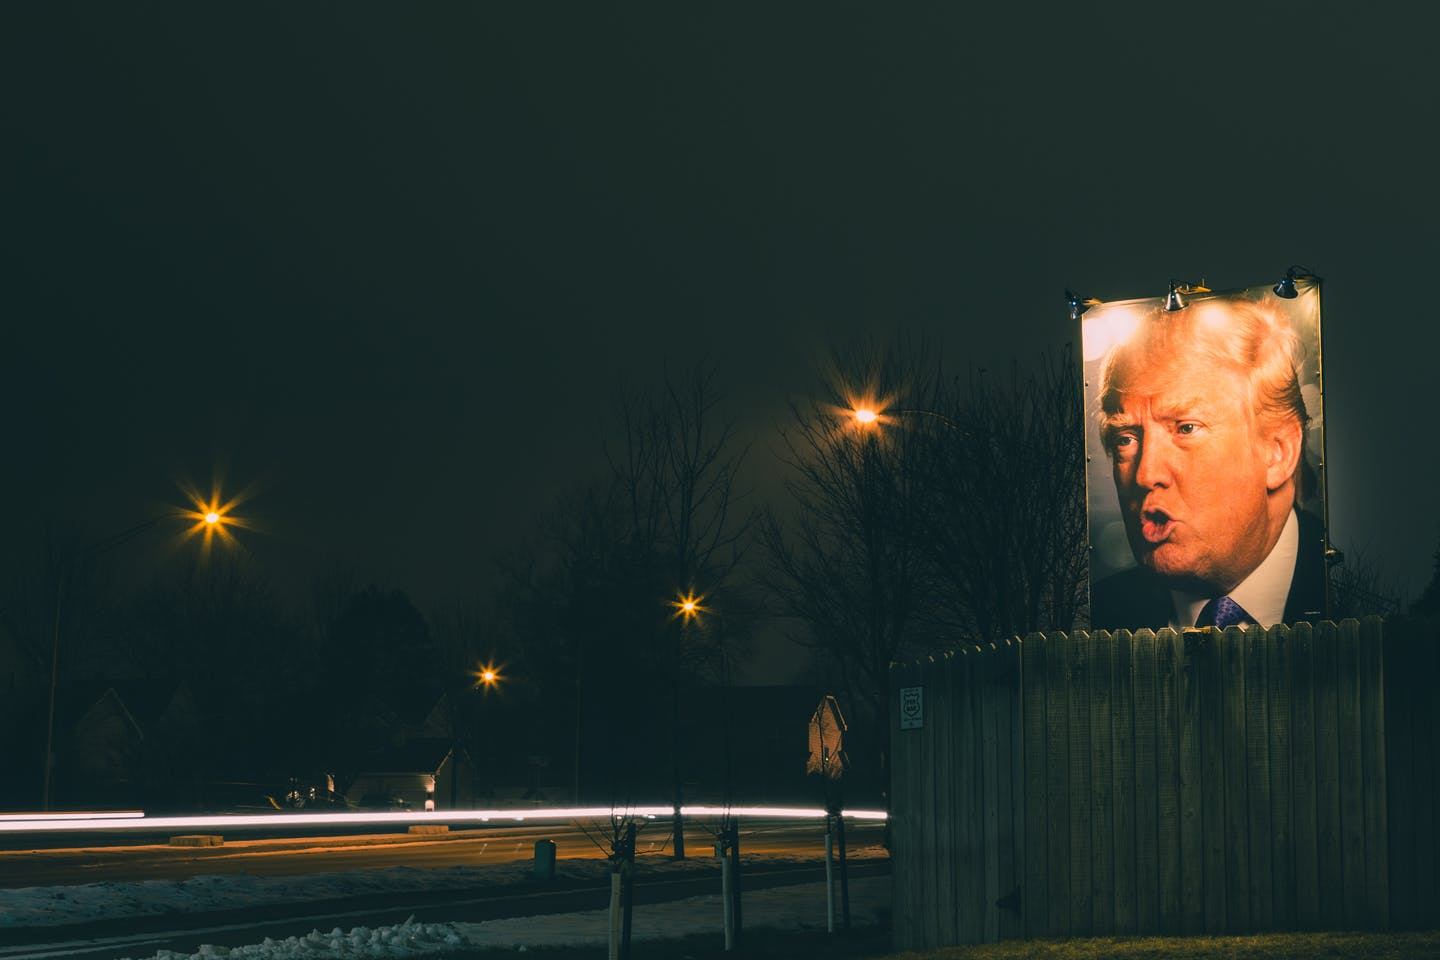 Donald Trump poster in the backyard